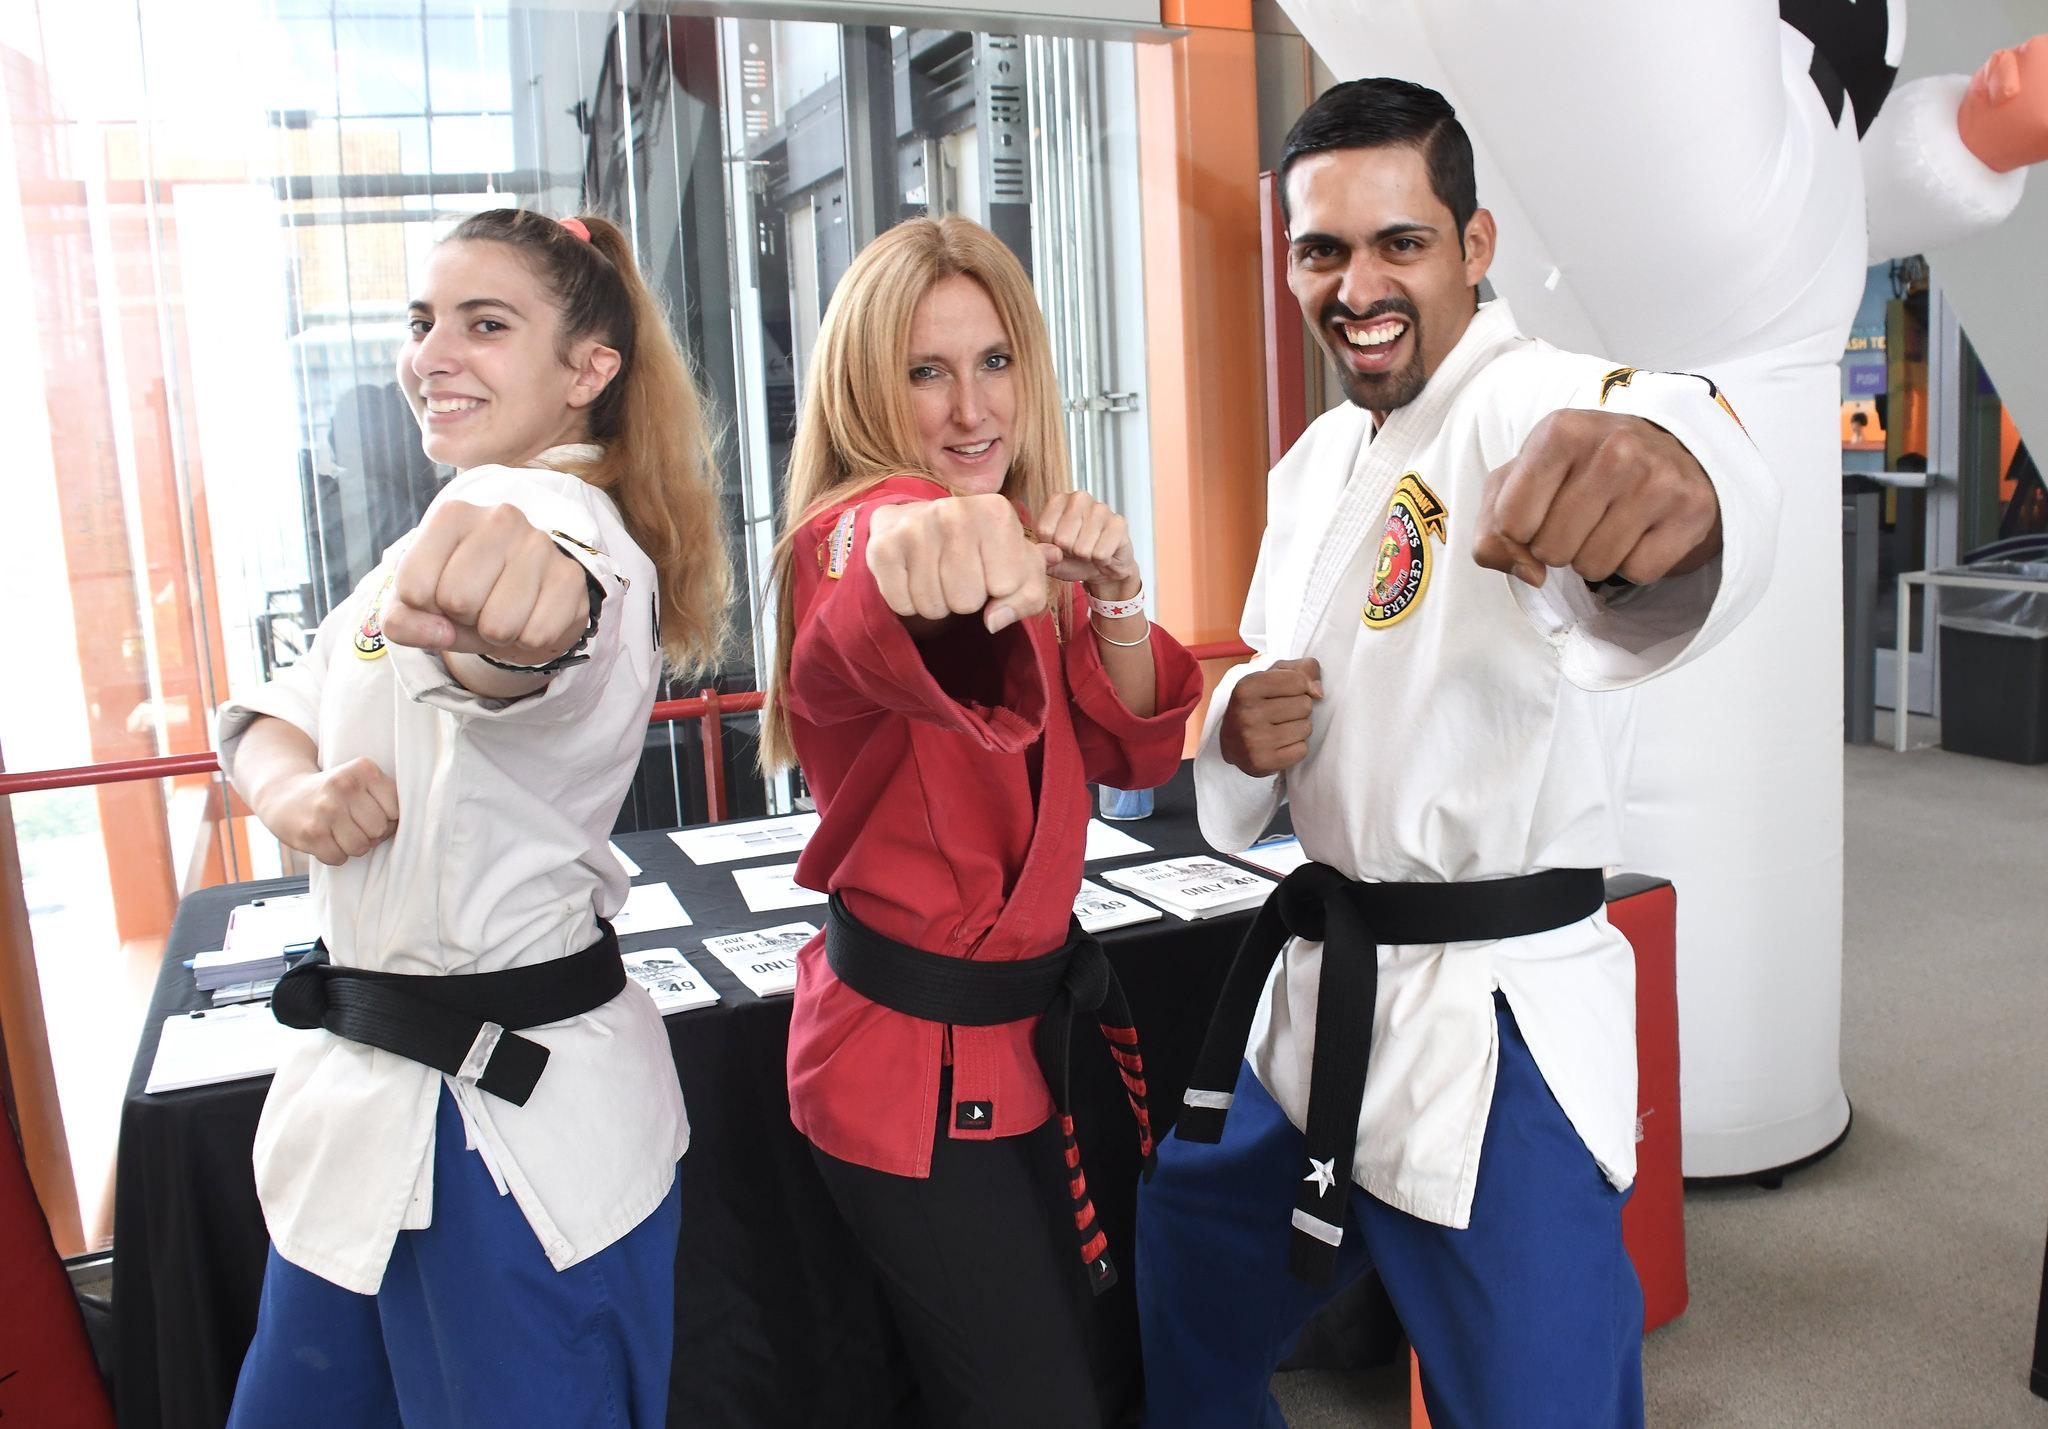 Karate, Martial Arts, Southington Karate, Southington Martial Arts